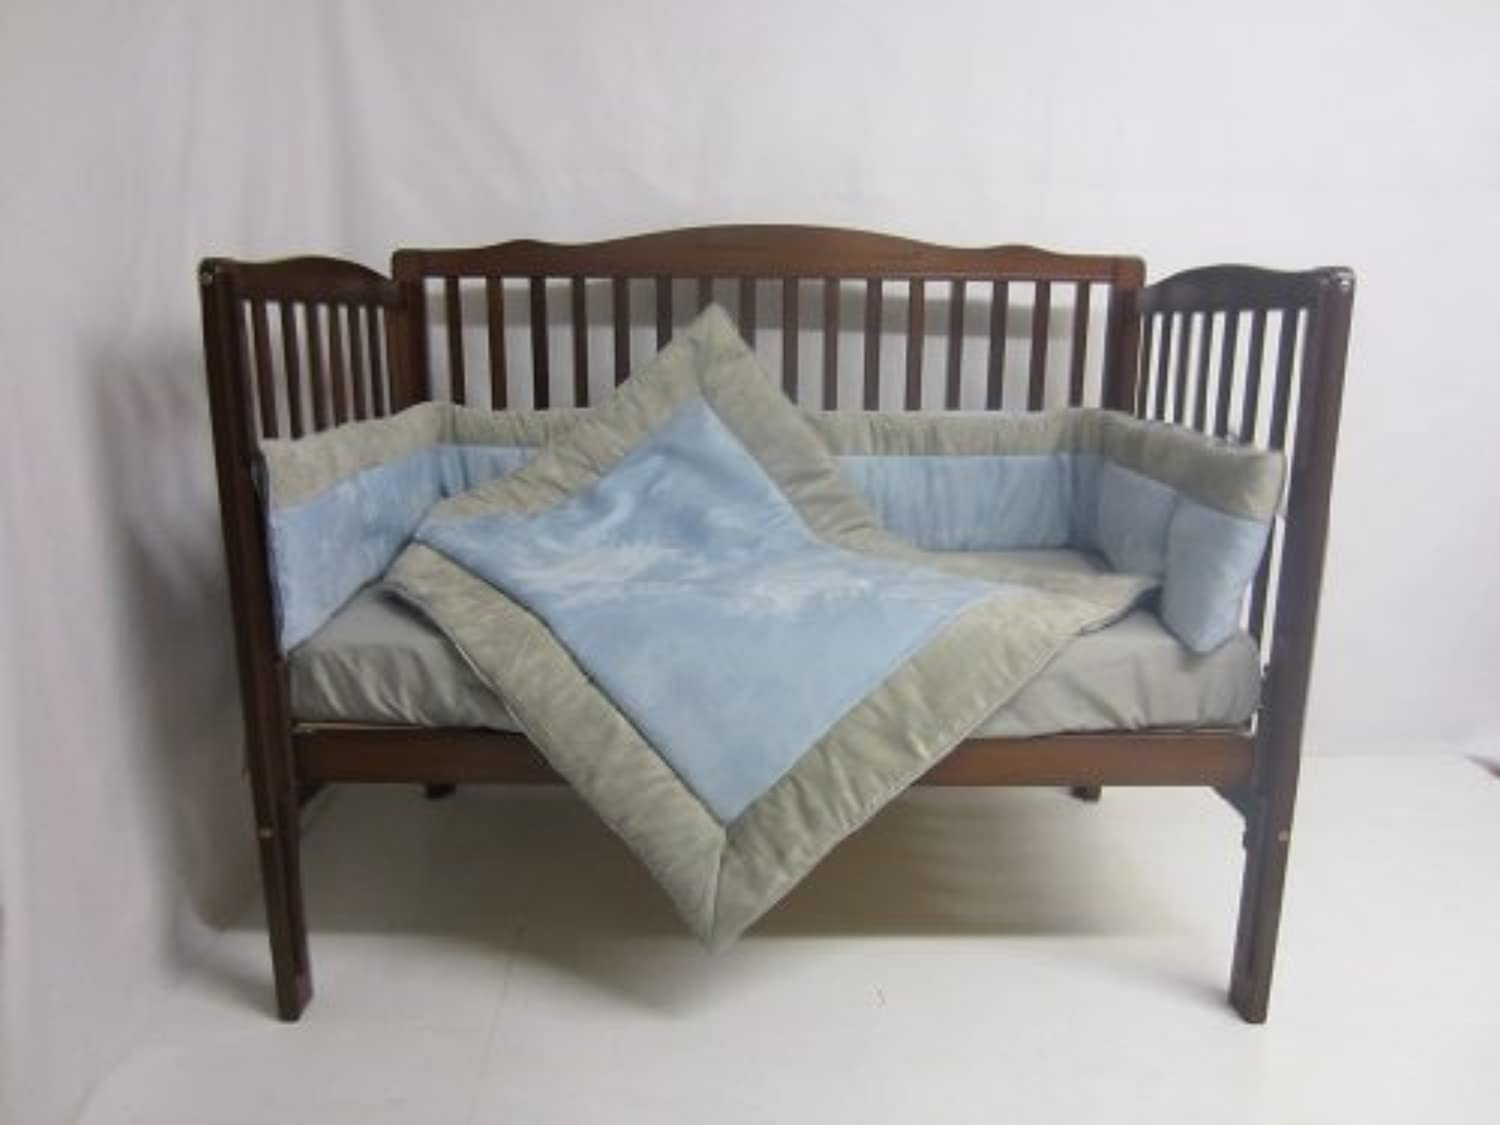 Baby Doll Bedding Zuma 3 Piece Crib Bedding Set, Grey/Blue by BabyDoll Bedding